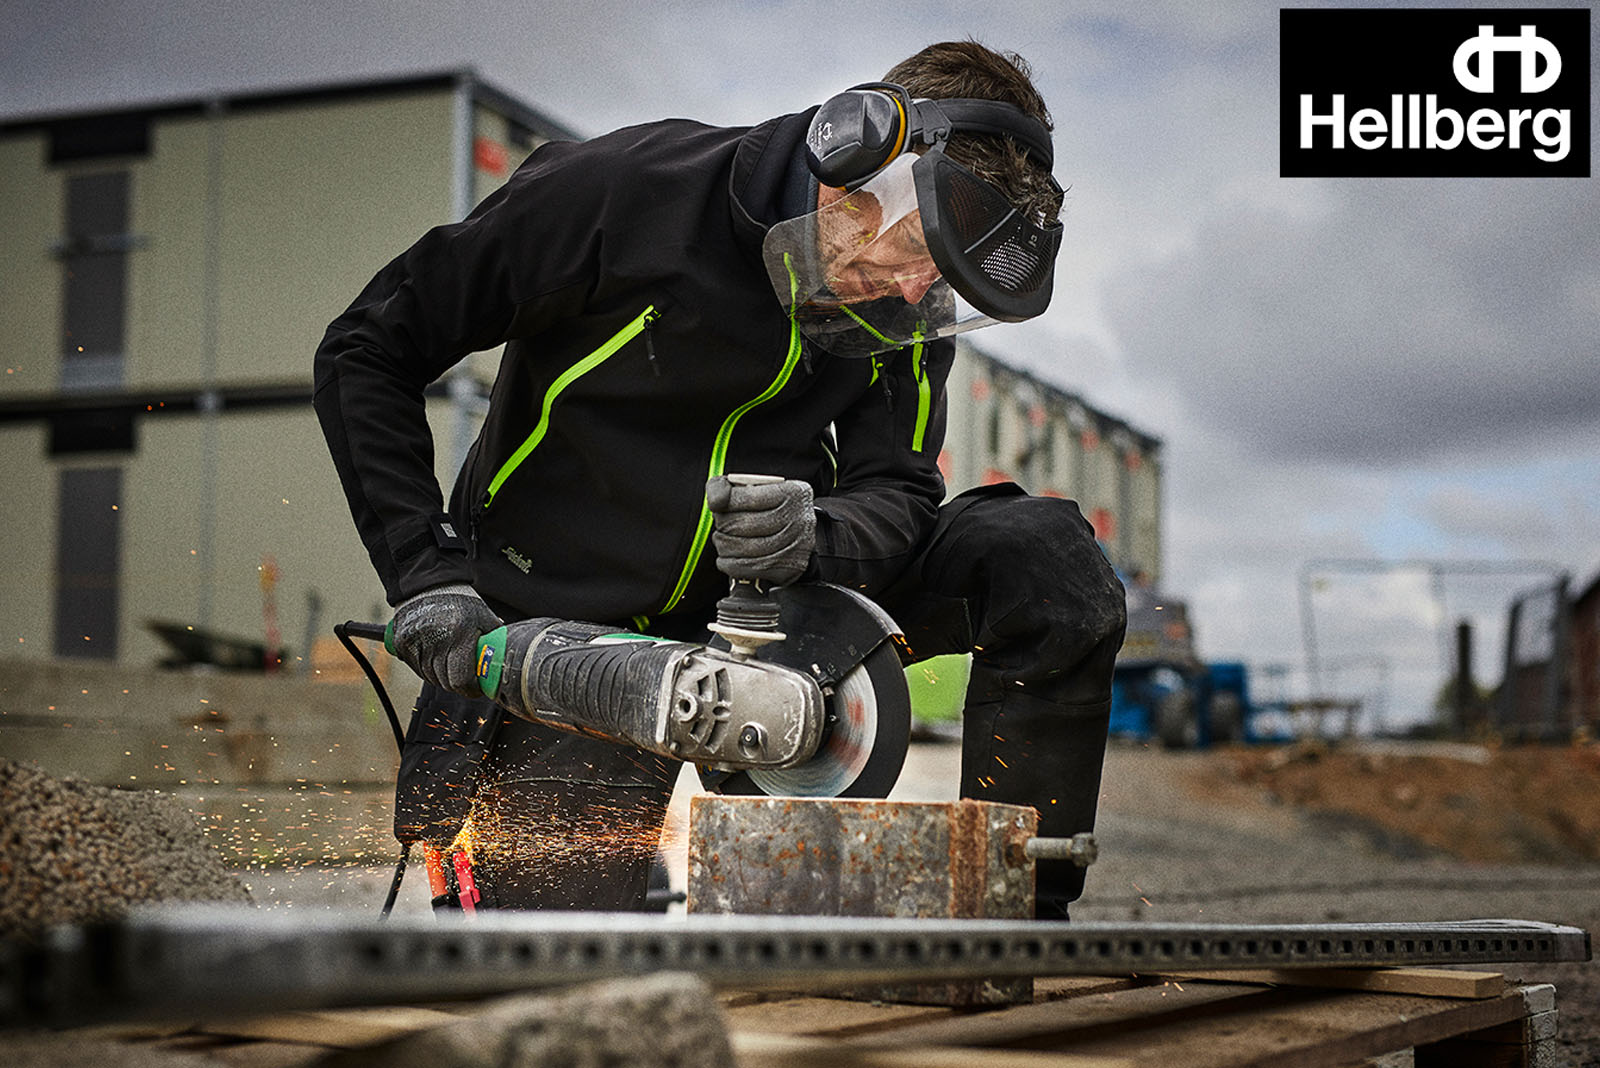 Hellberg Safety's range of face protection products